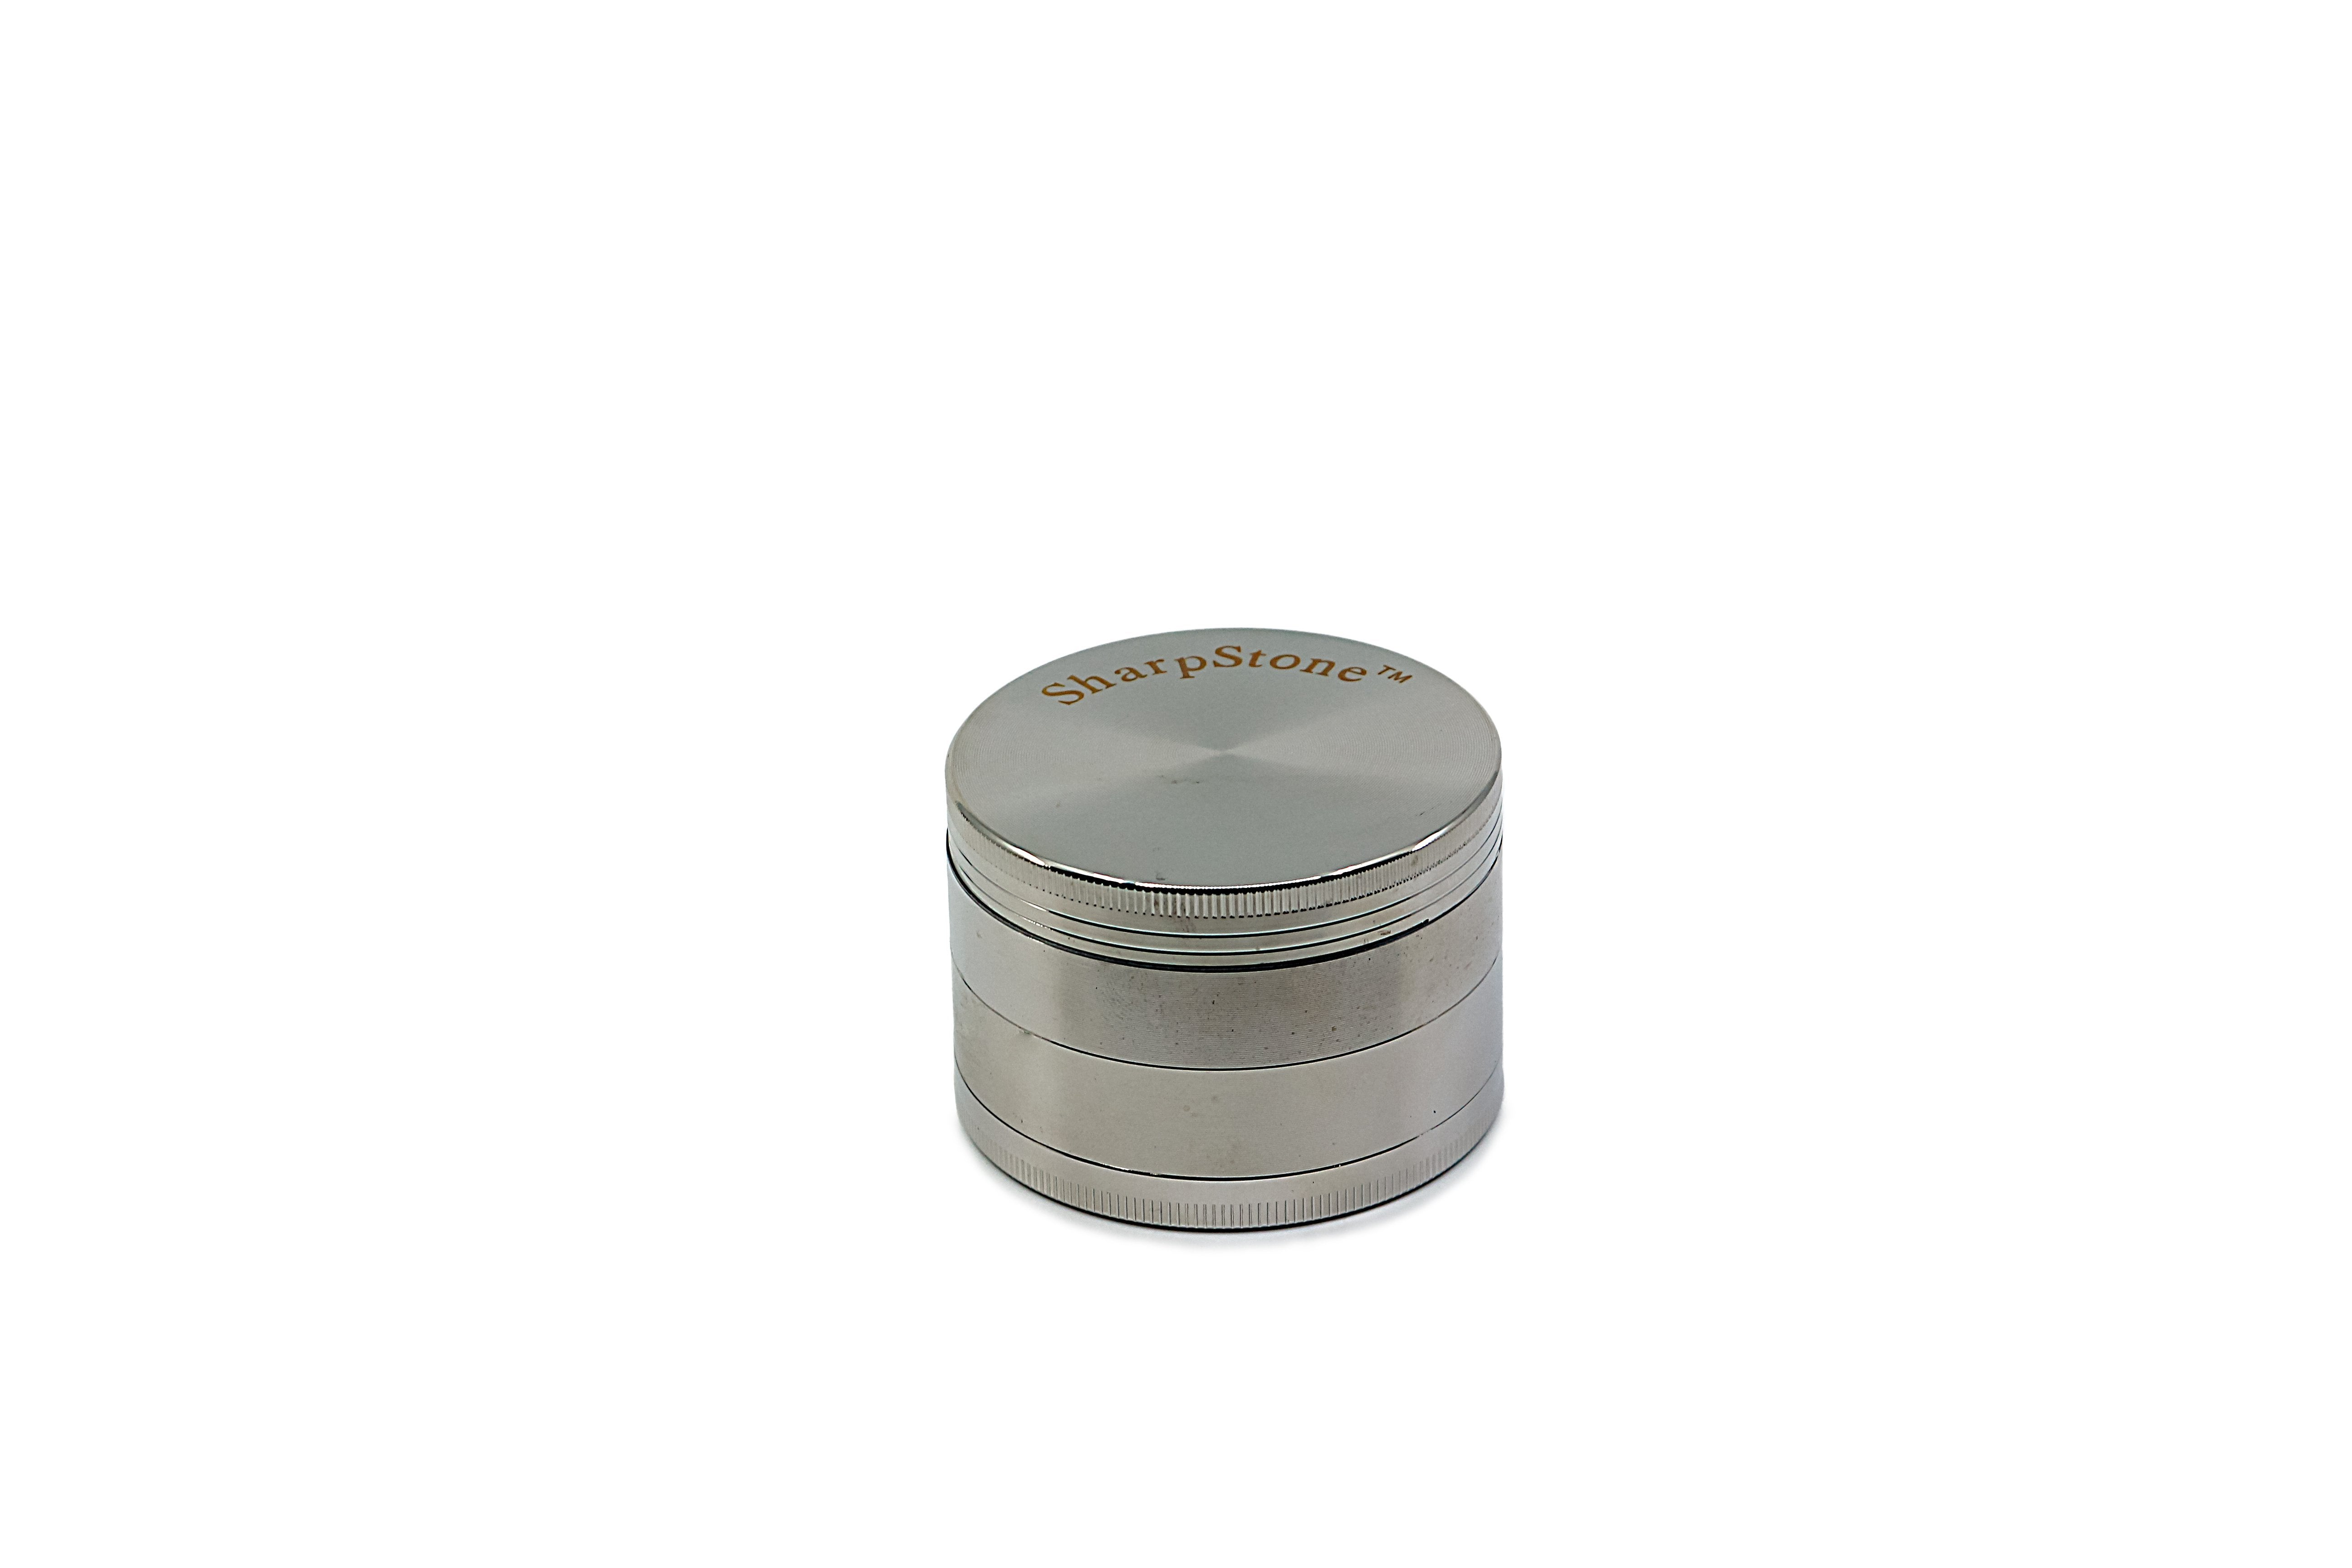 "SharpStone Zinc 2.5"" ( 63mm)"